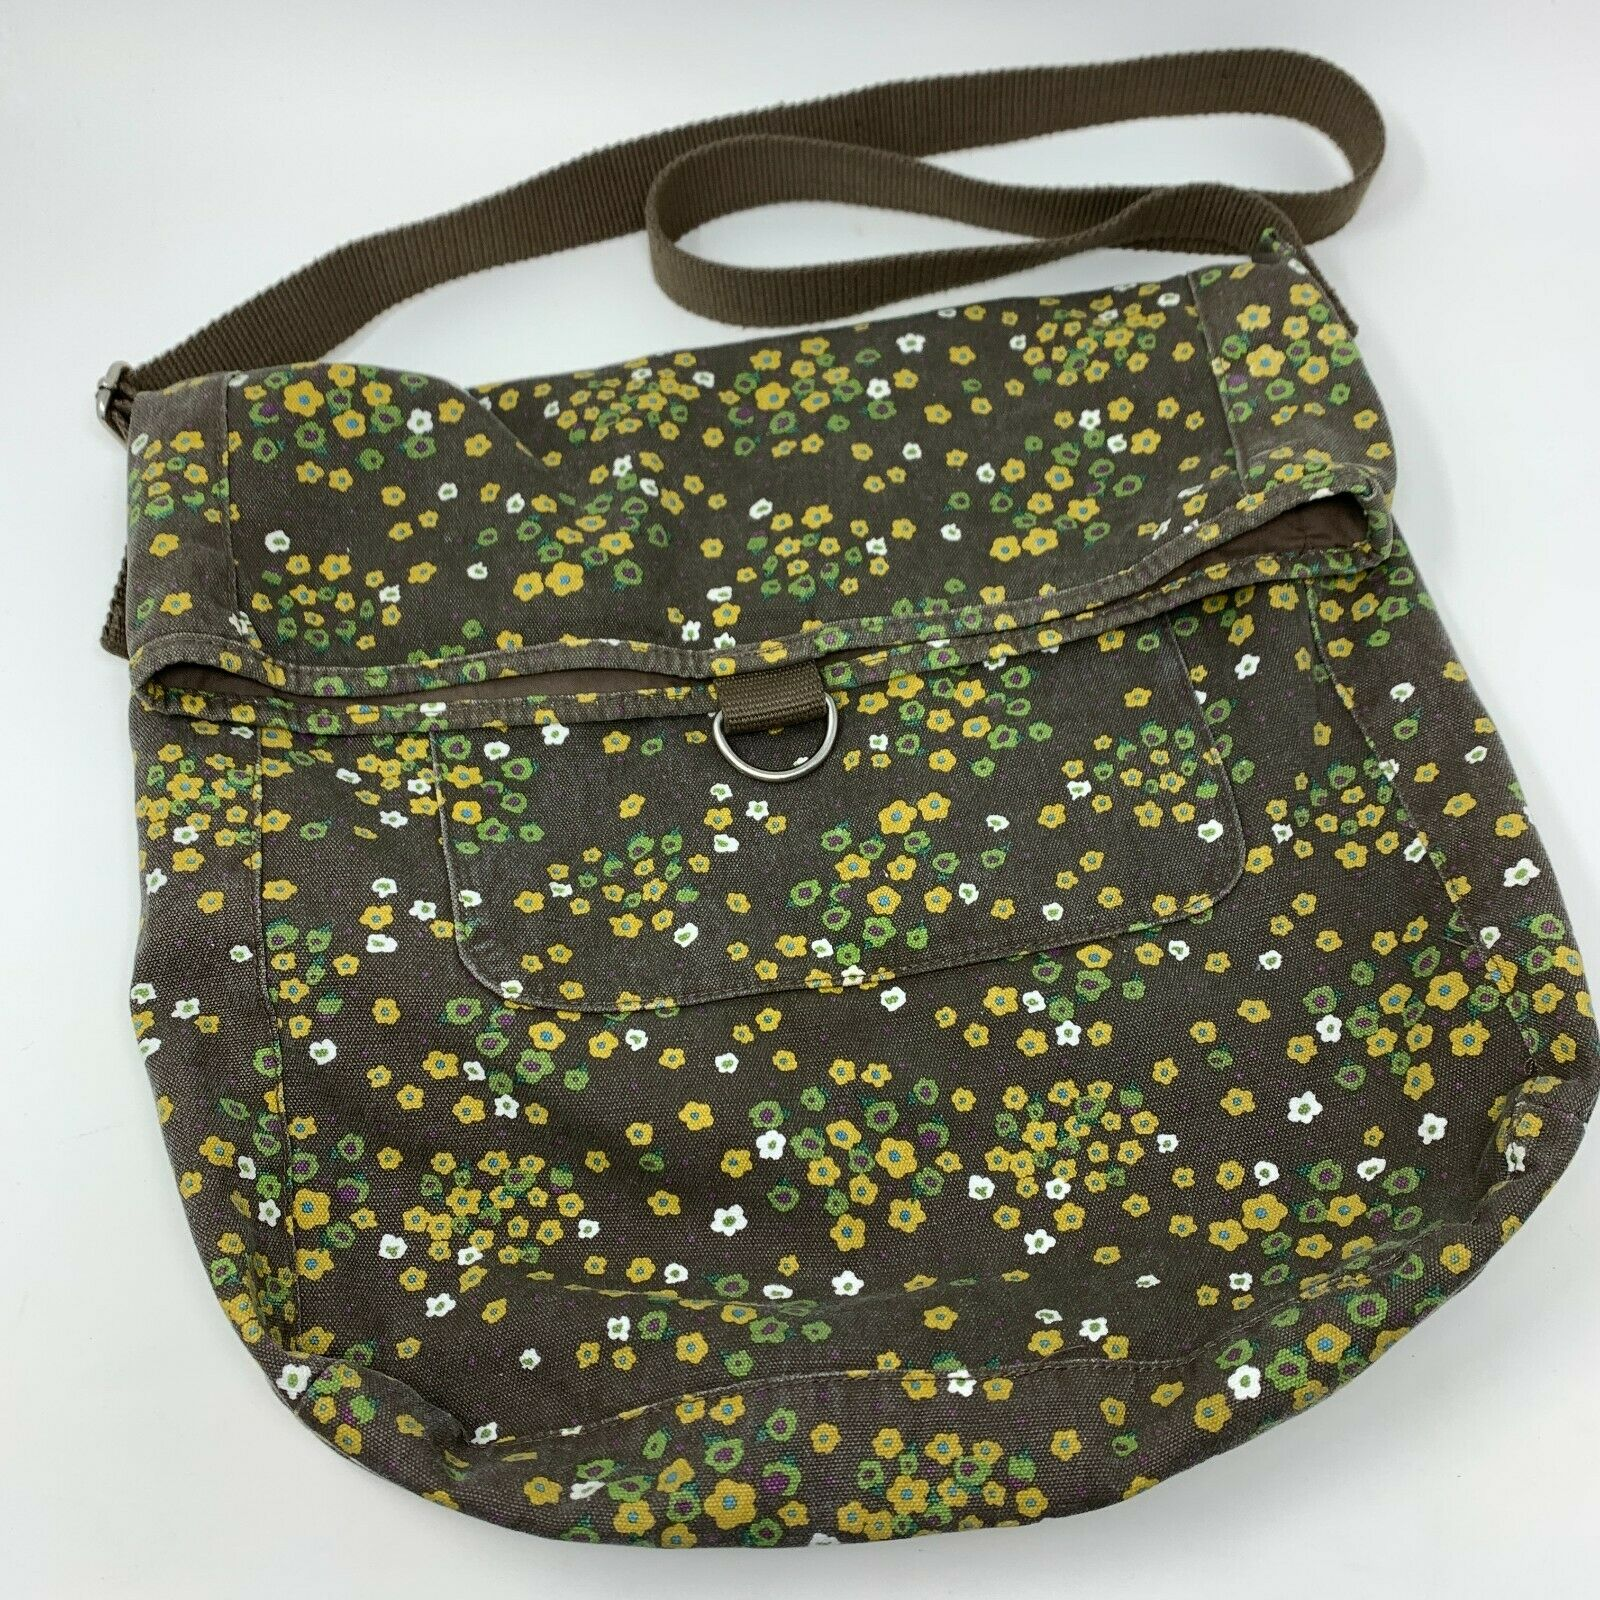 Target Women's Gray Floral Fold Over Large Crossbody Canvas Bag Purse Tote